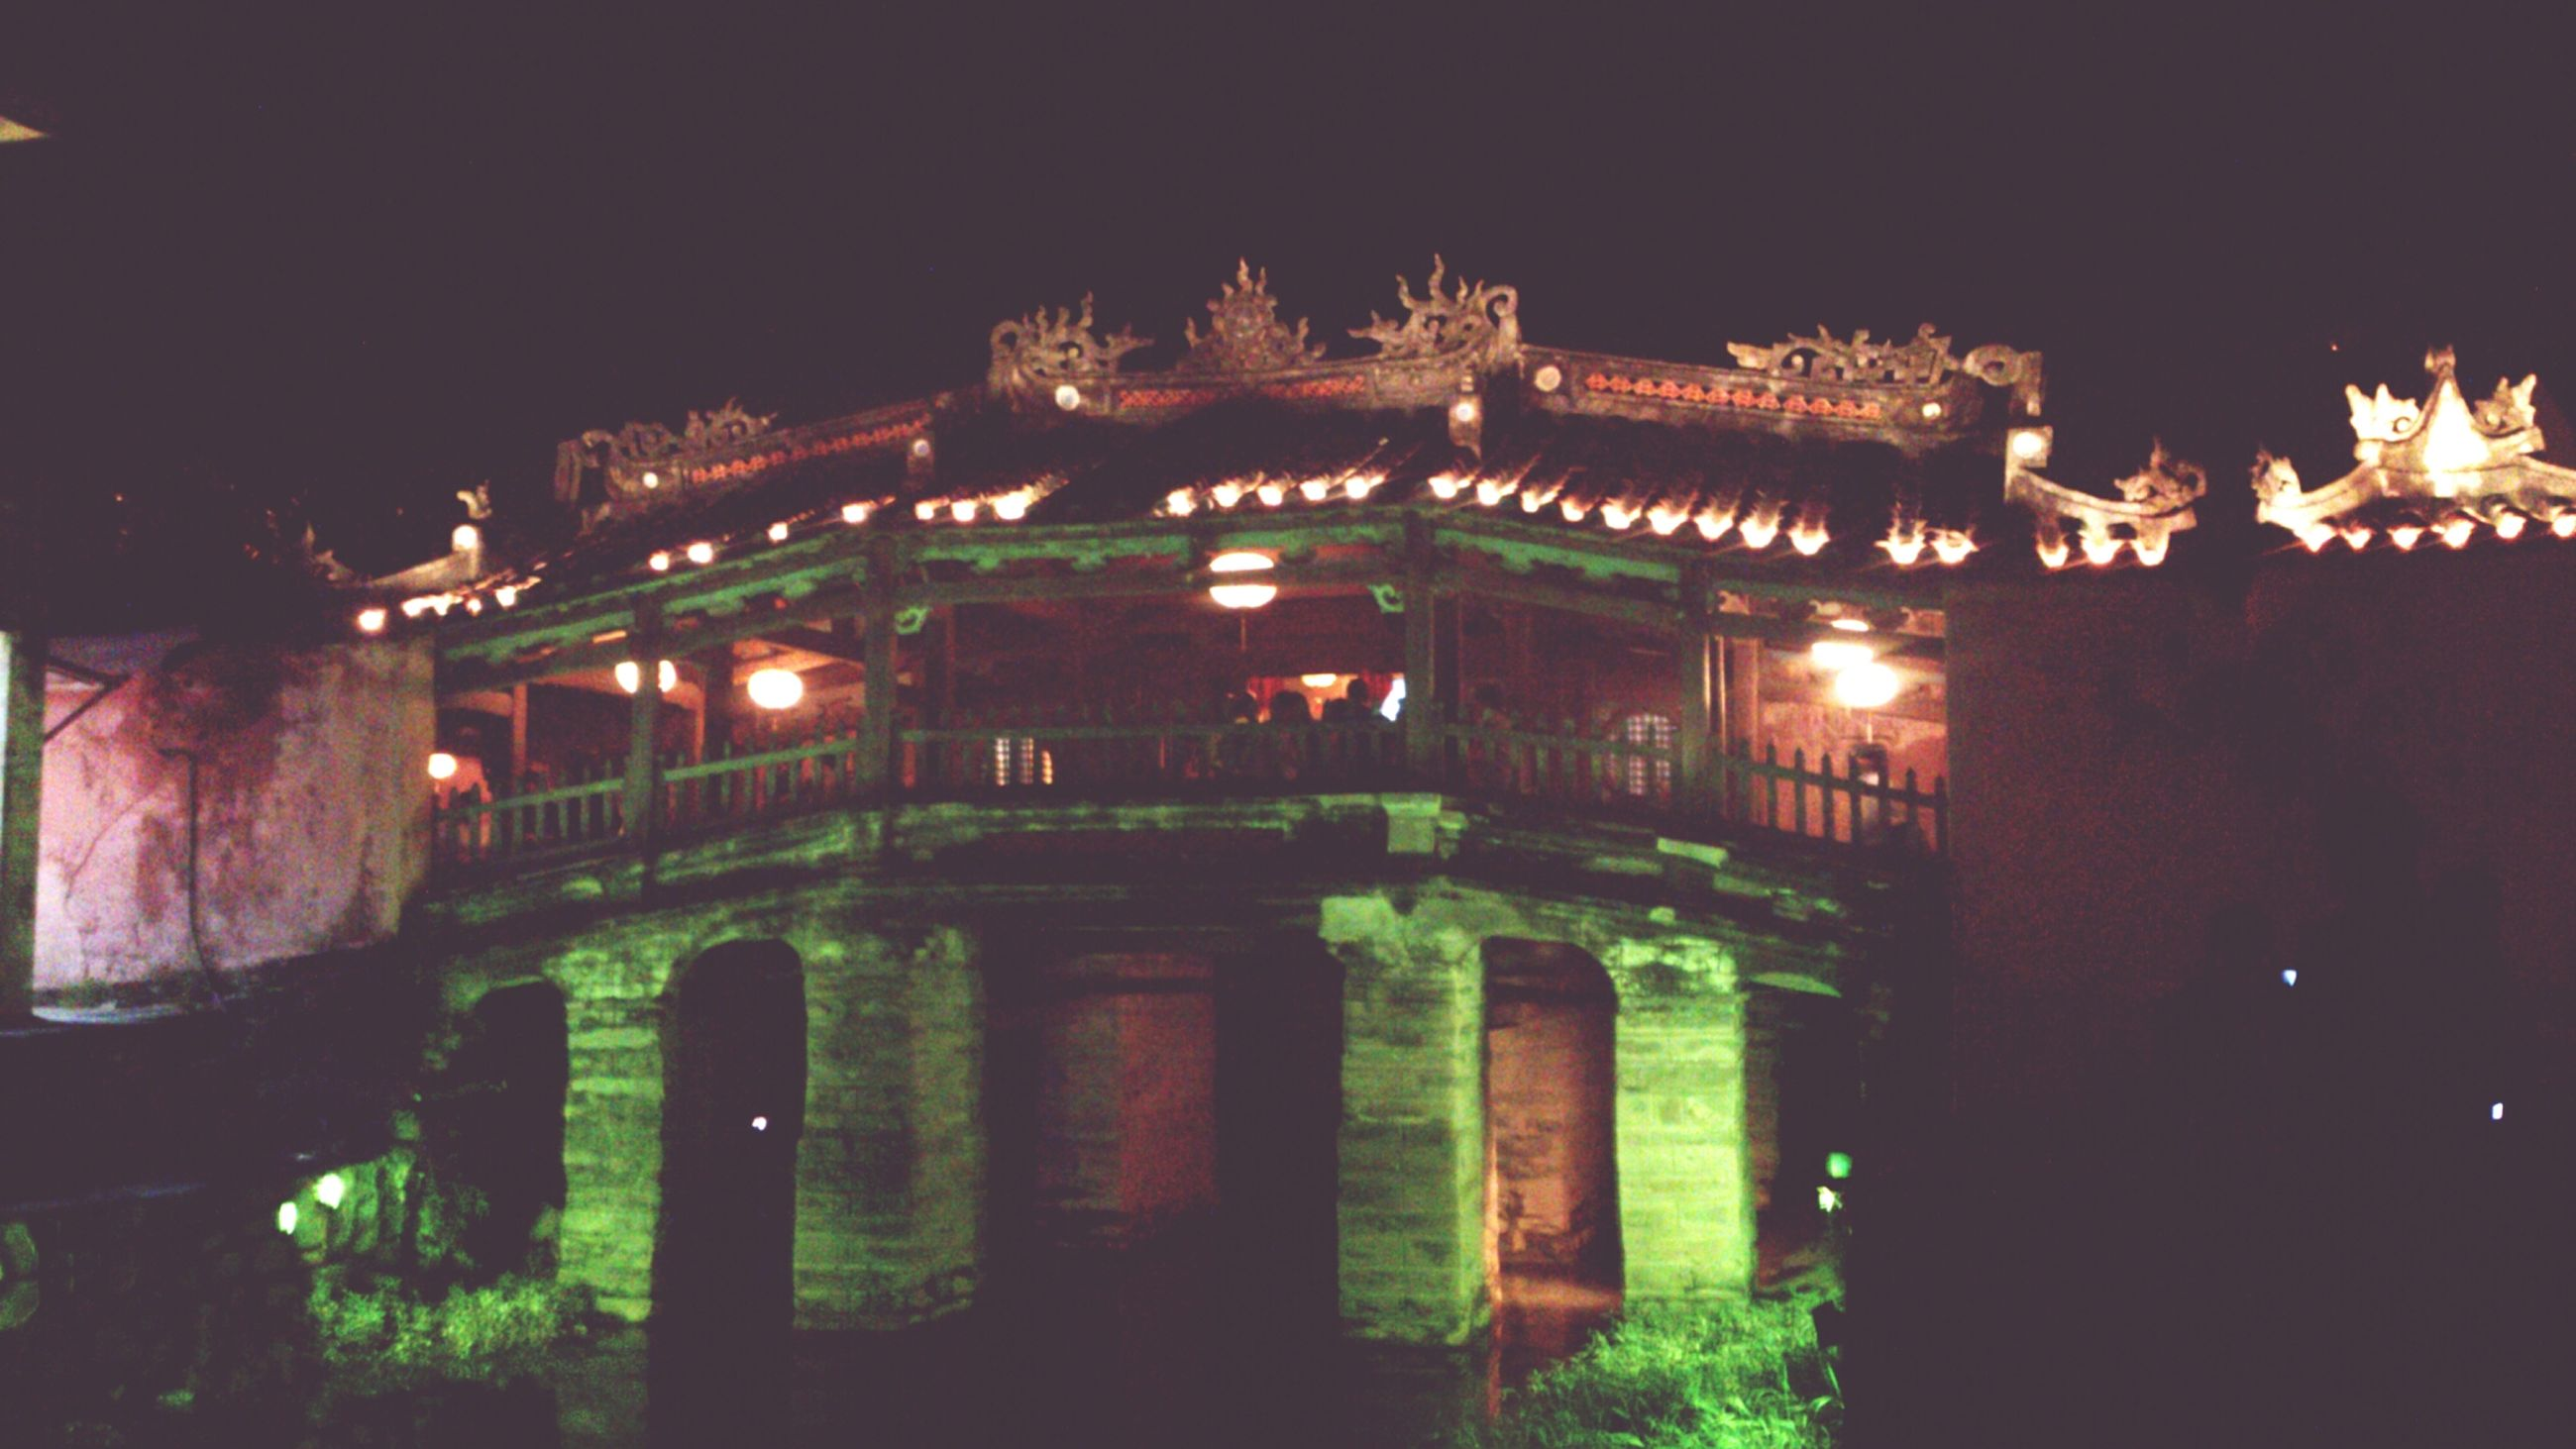 night, illuminated, architecture, built structure, building exterior, history, city, outdoors, sky, dark, clear sky, religion, no people, lighting equipment, old, travel destinations, building, place of worship, residential building, facade